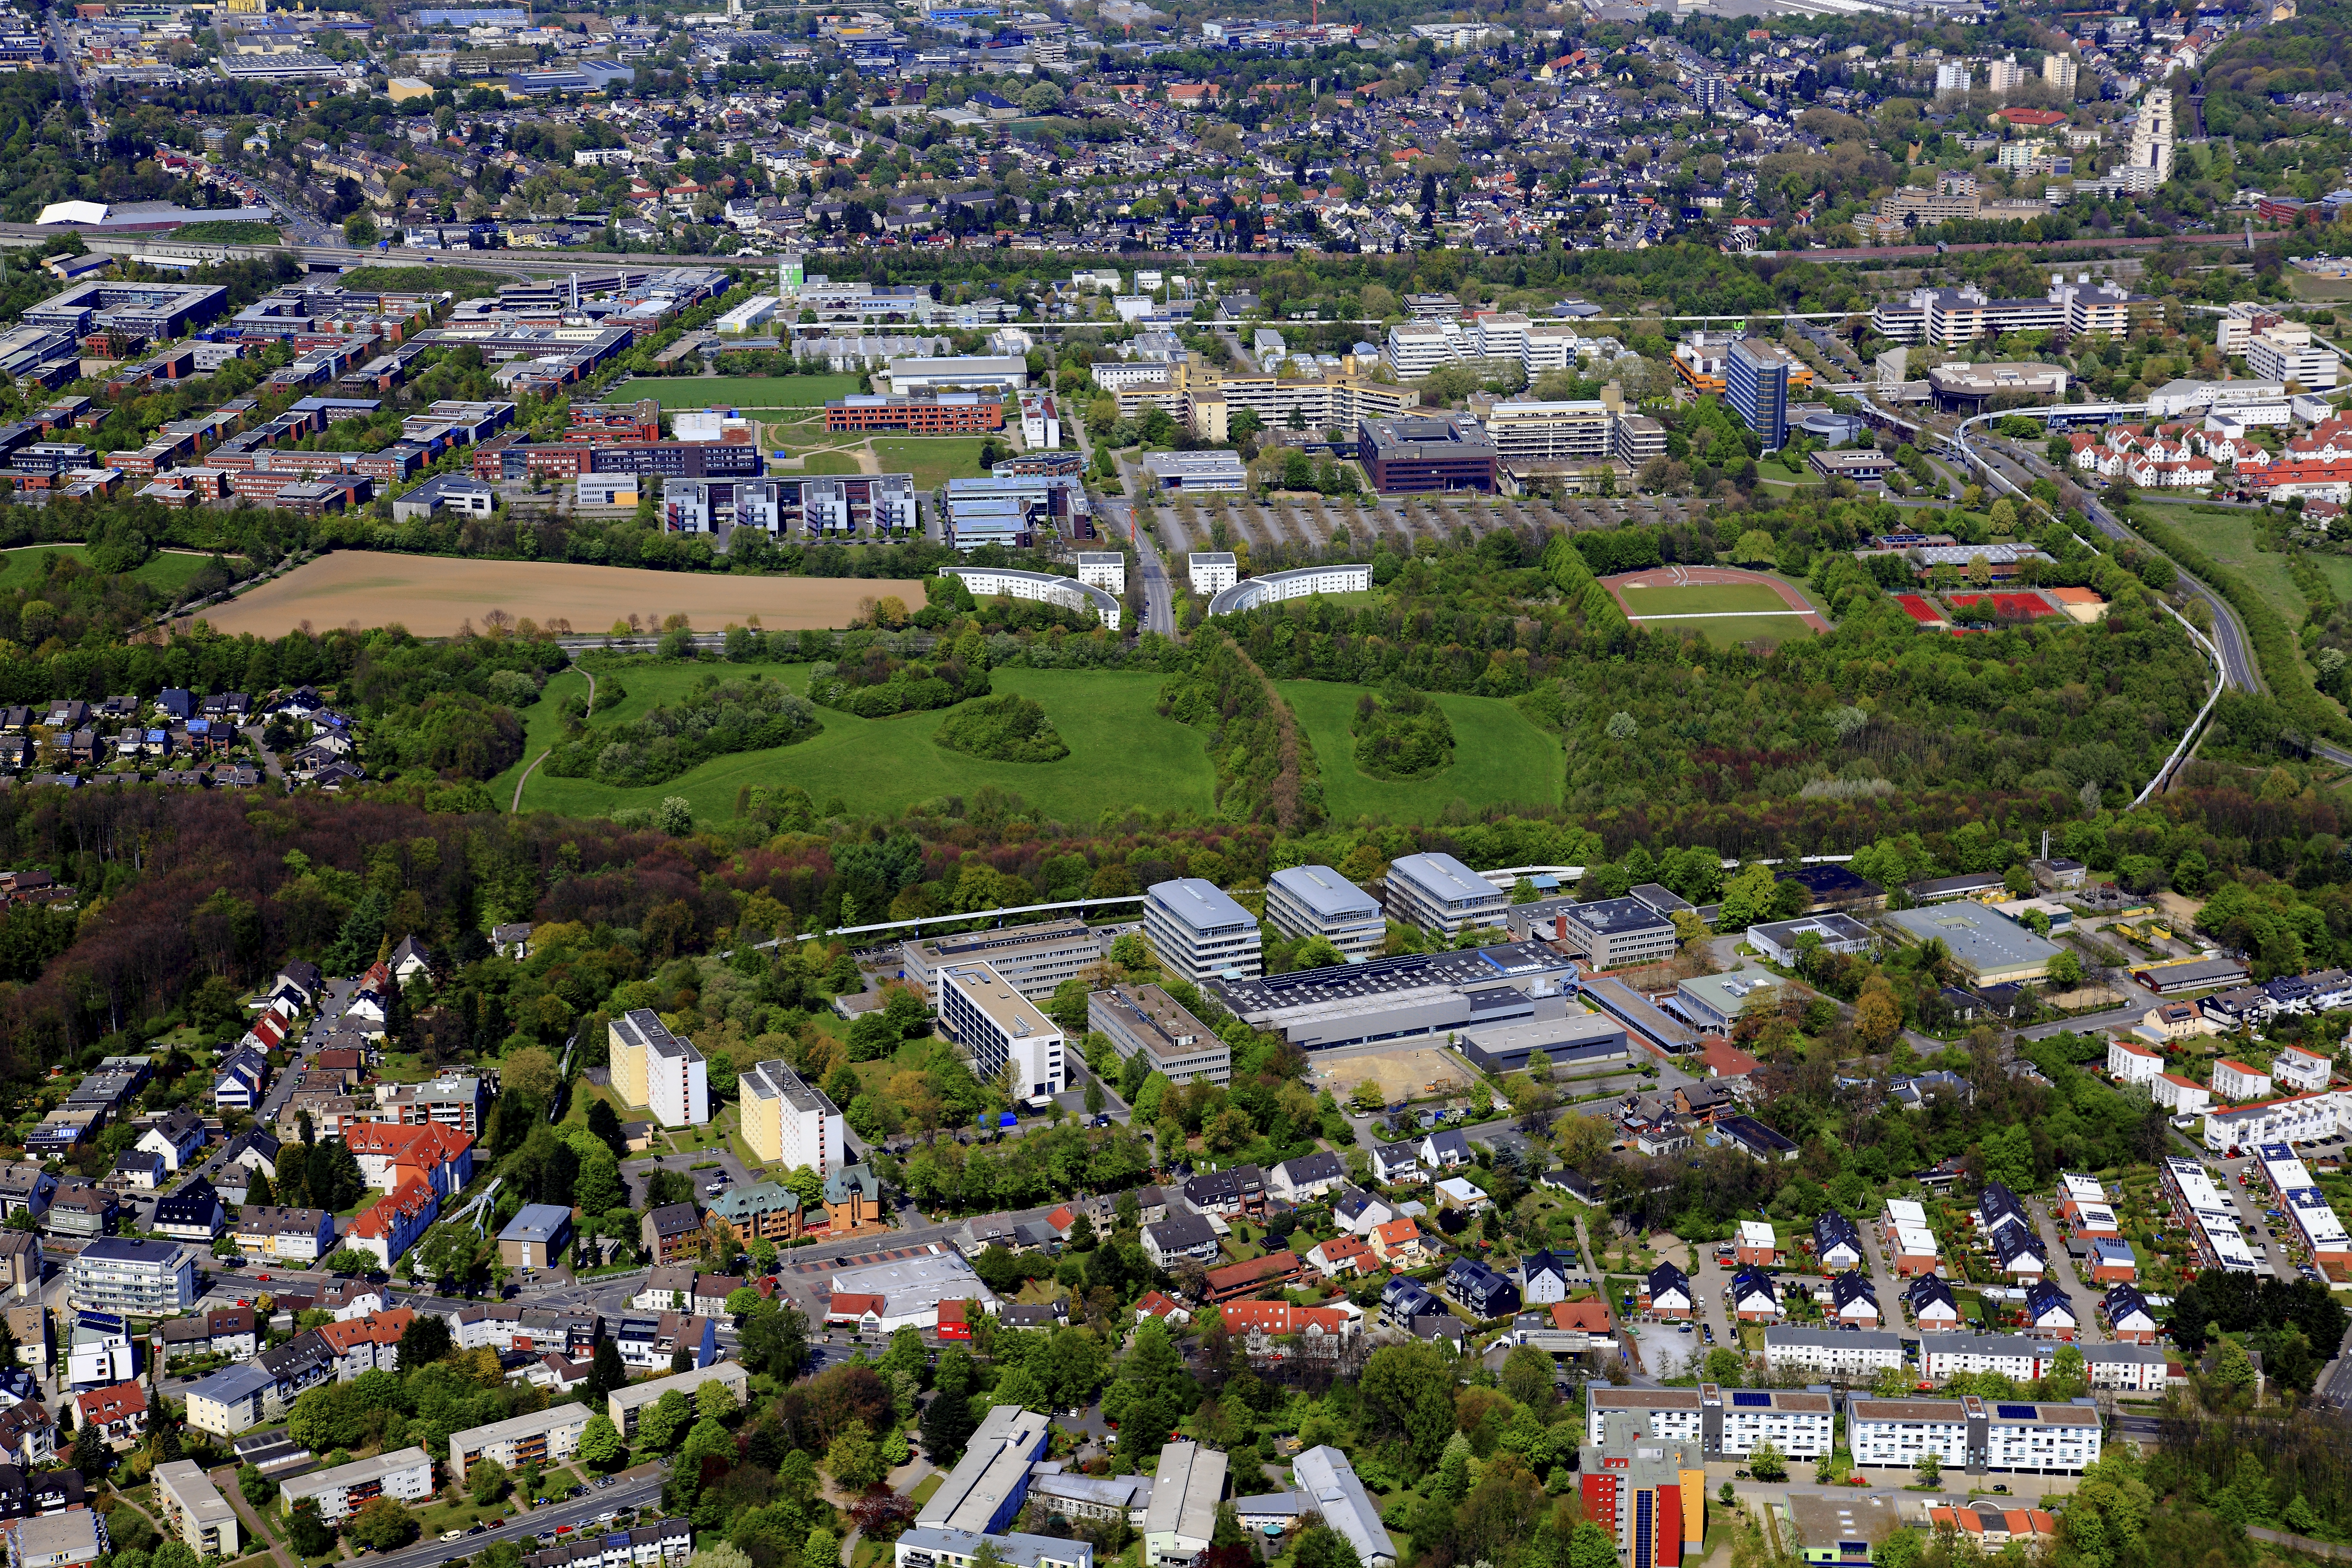 Aerial photo of TU Dortmund University